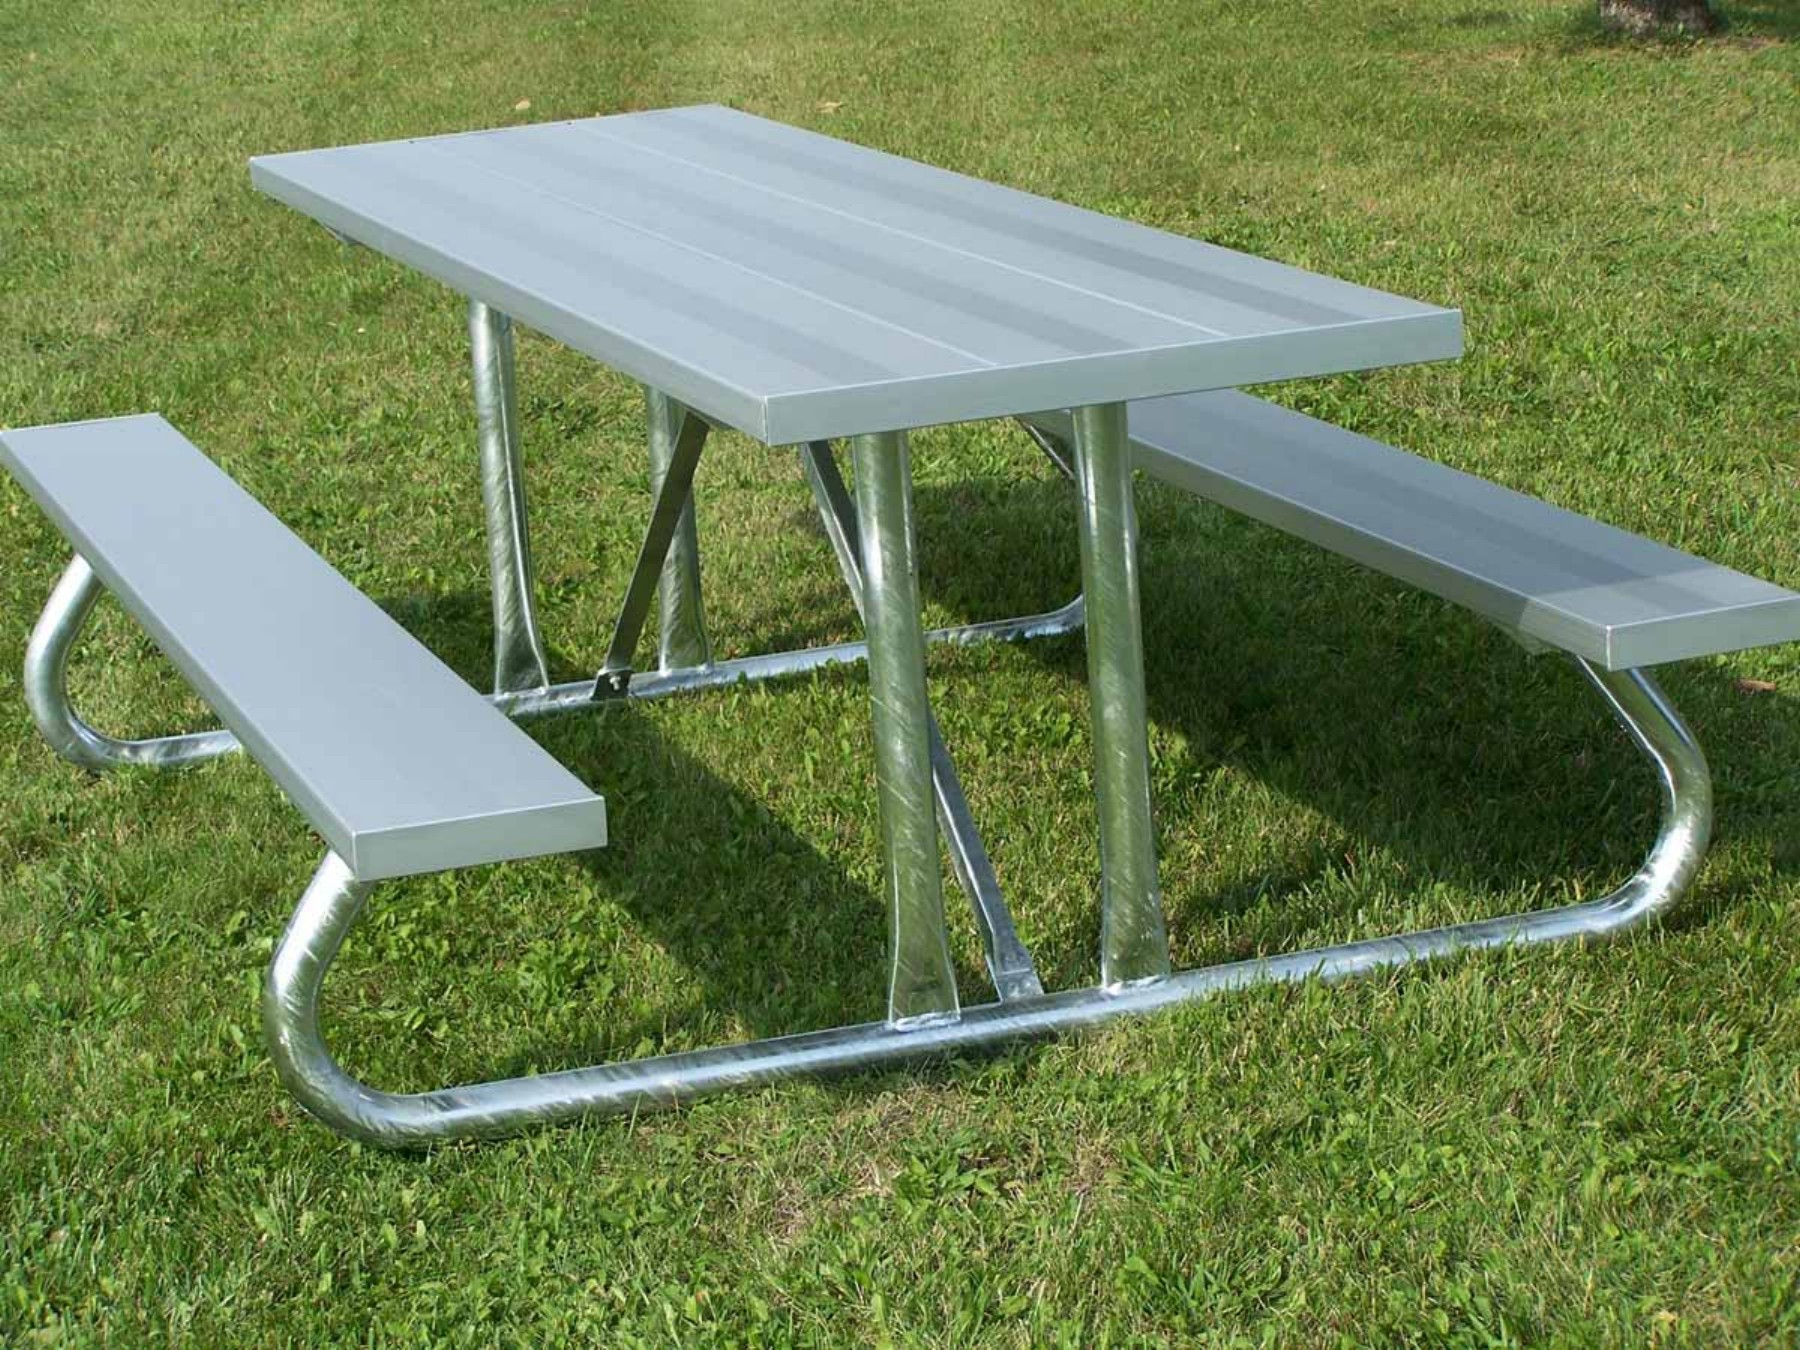 Aluminum Picnic Table Heavy GageSteel Legs PTHG - Park bench and table